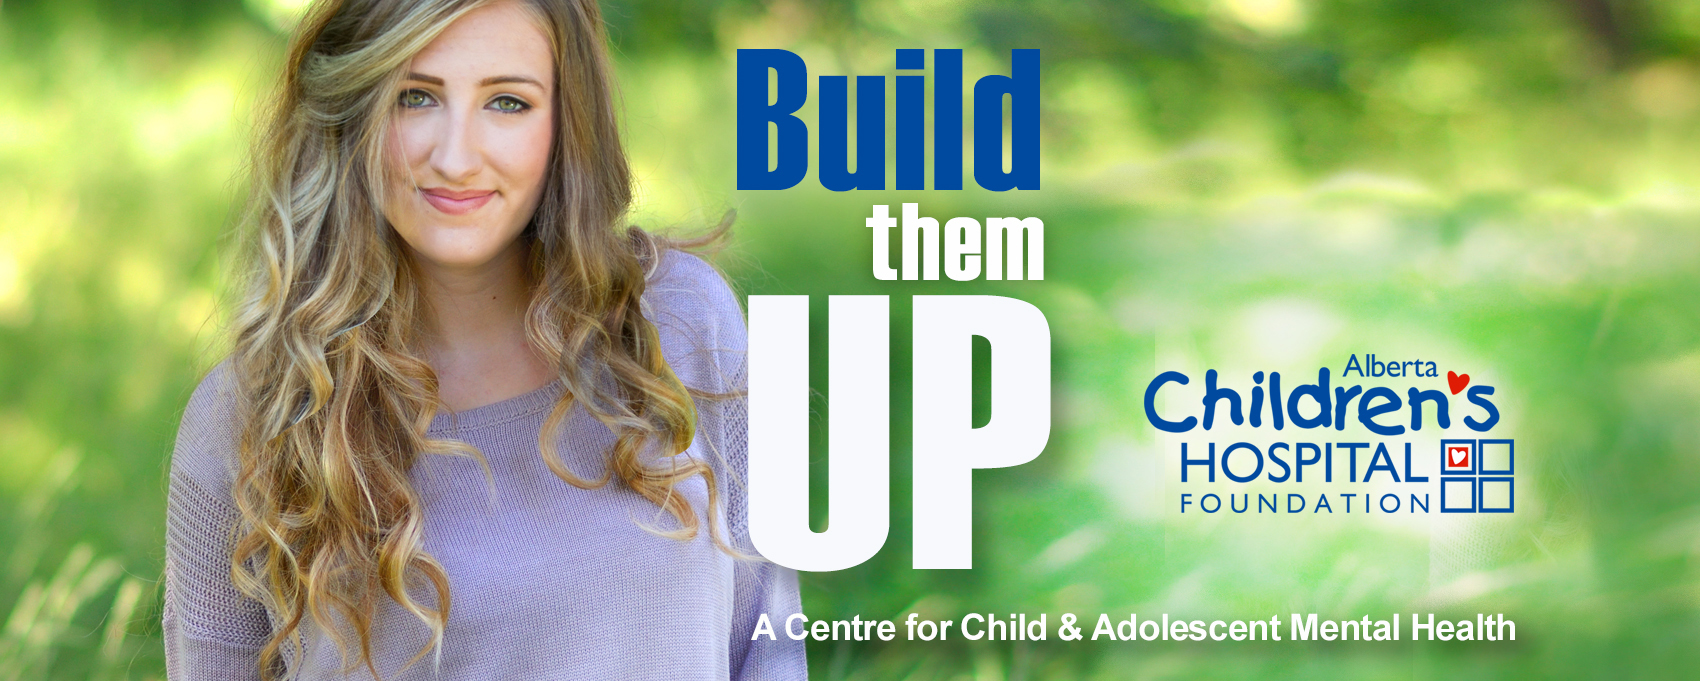 build them up_landing page_banner_julia